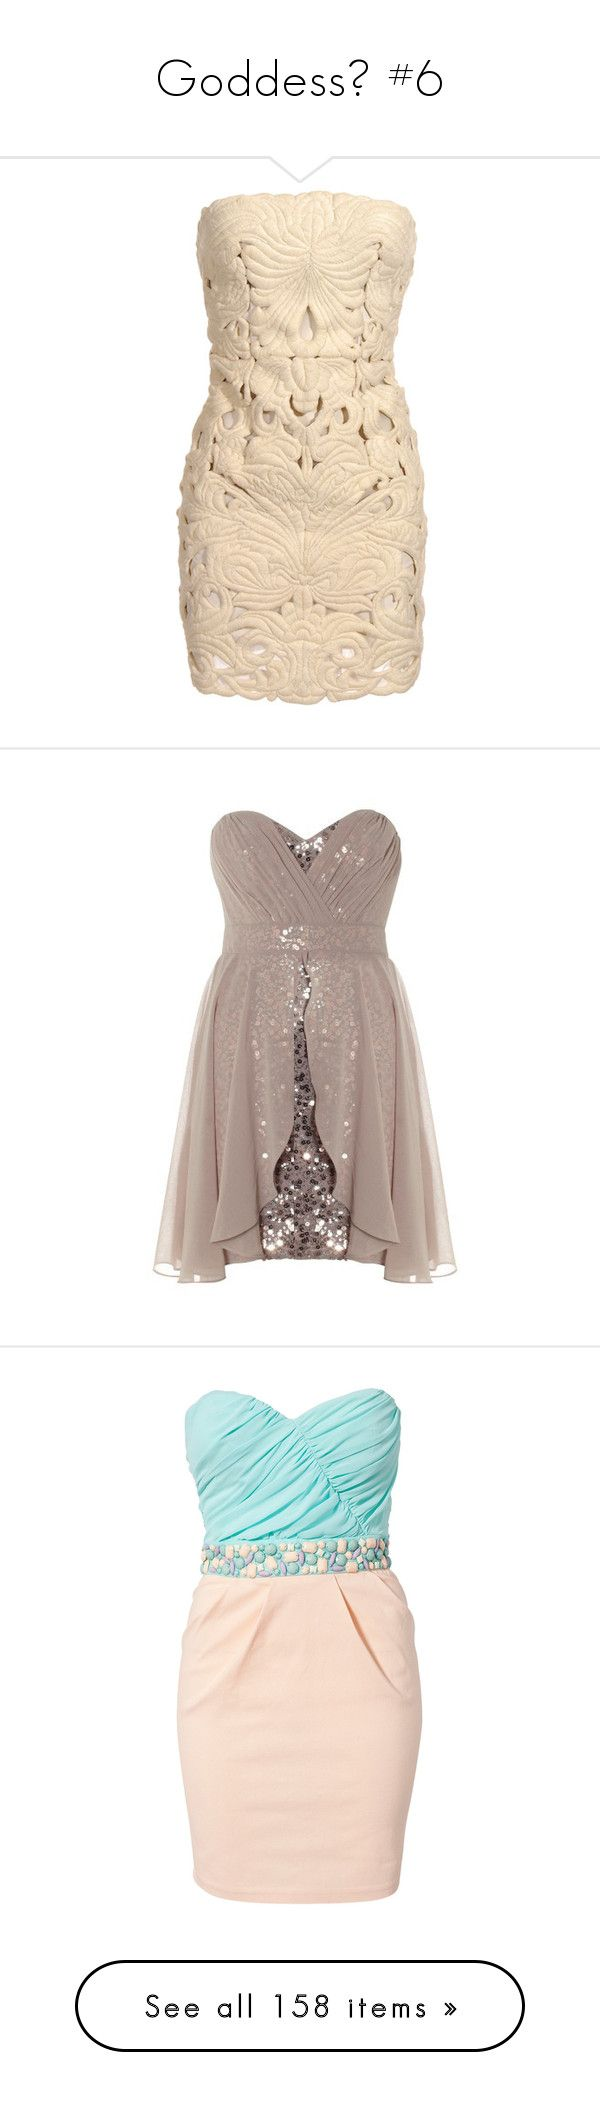 """""""Goddess🌸 #6"""" by moon-and-starss ❤ liked on Polyvore featuring dresses, vestidos, short dresses, haljine, cut out mini dress, beige cocktail dress, stella mccartney, cut out cocktail dresses, cutout mini dress and robes"""